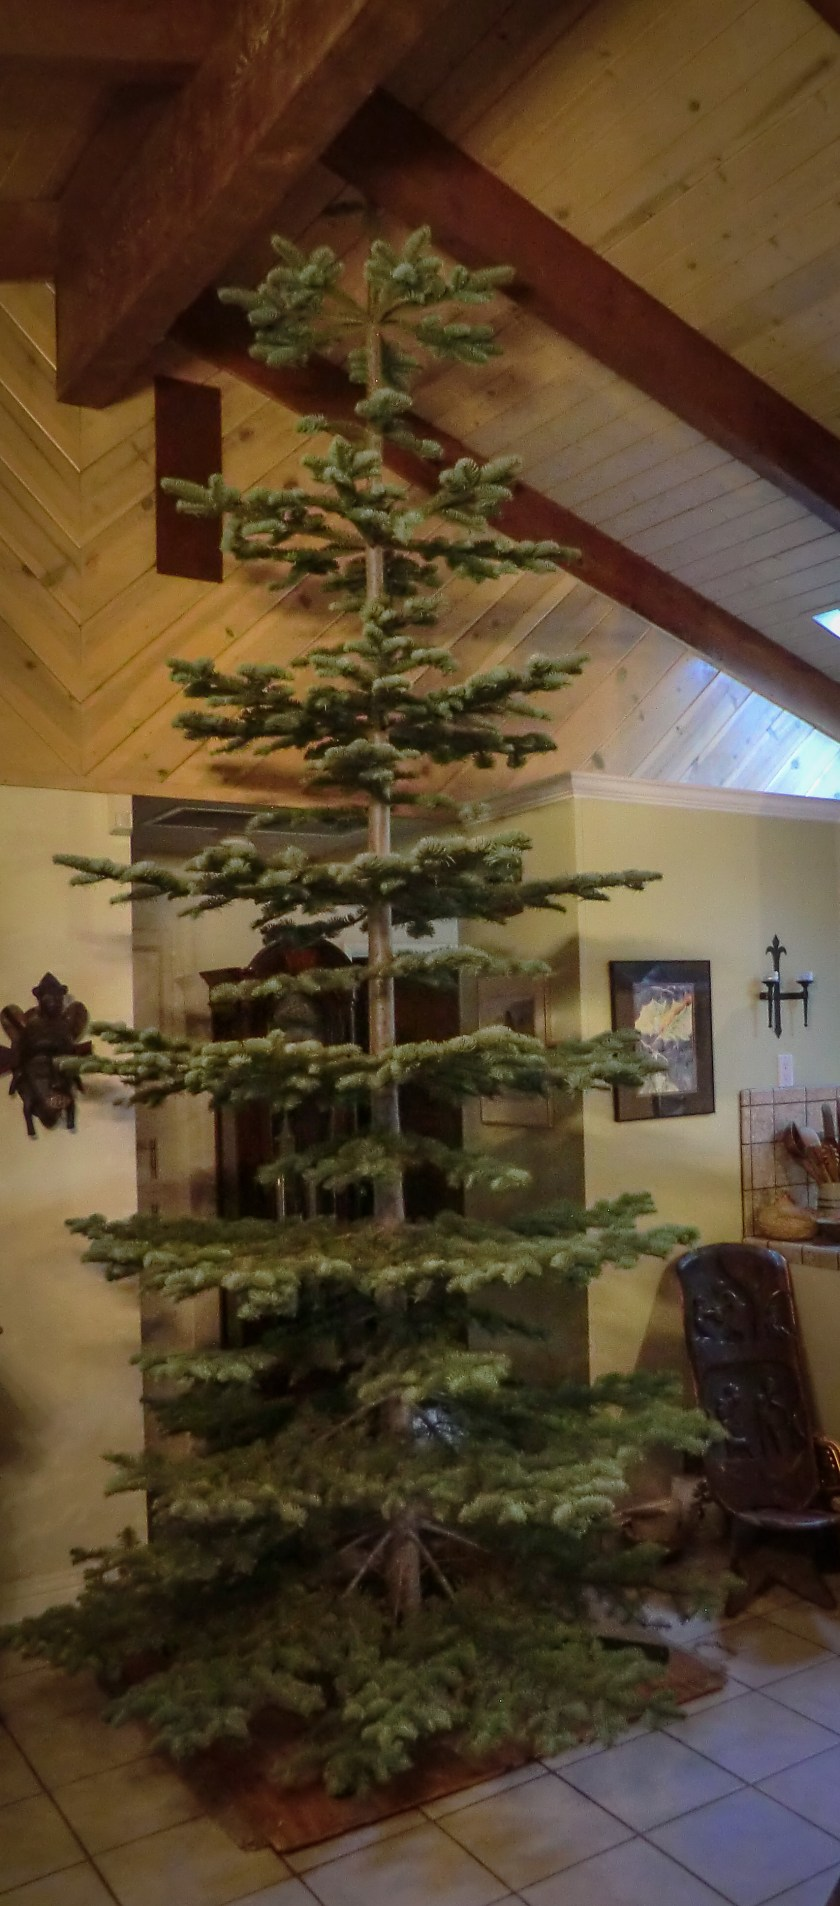 A pine tree standing in a living room, floor to ceiling.